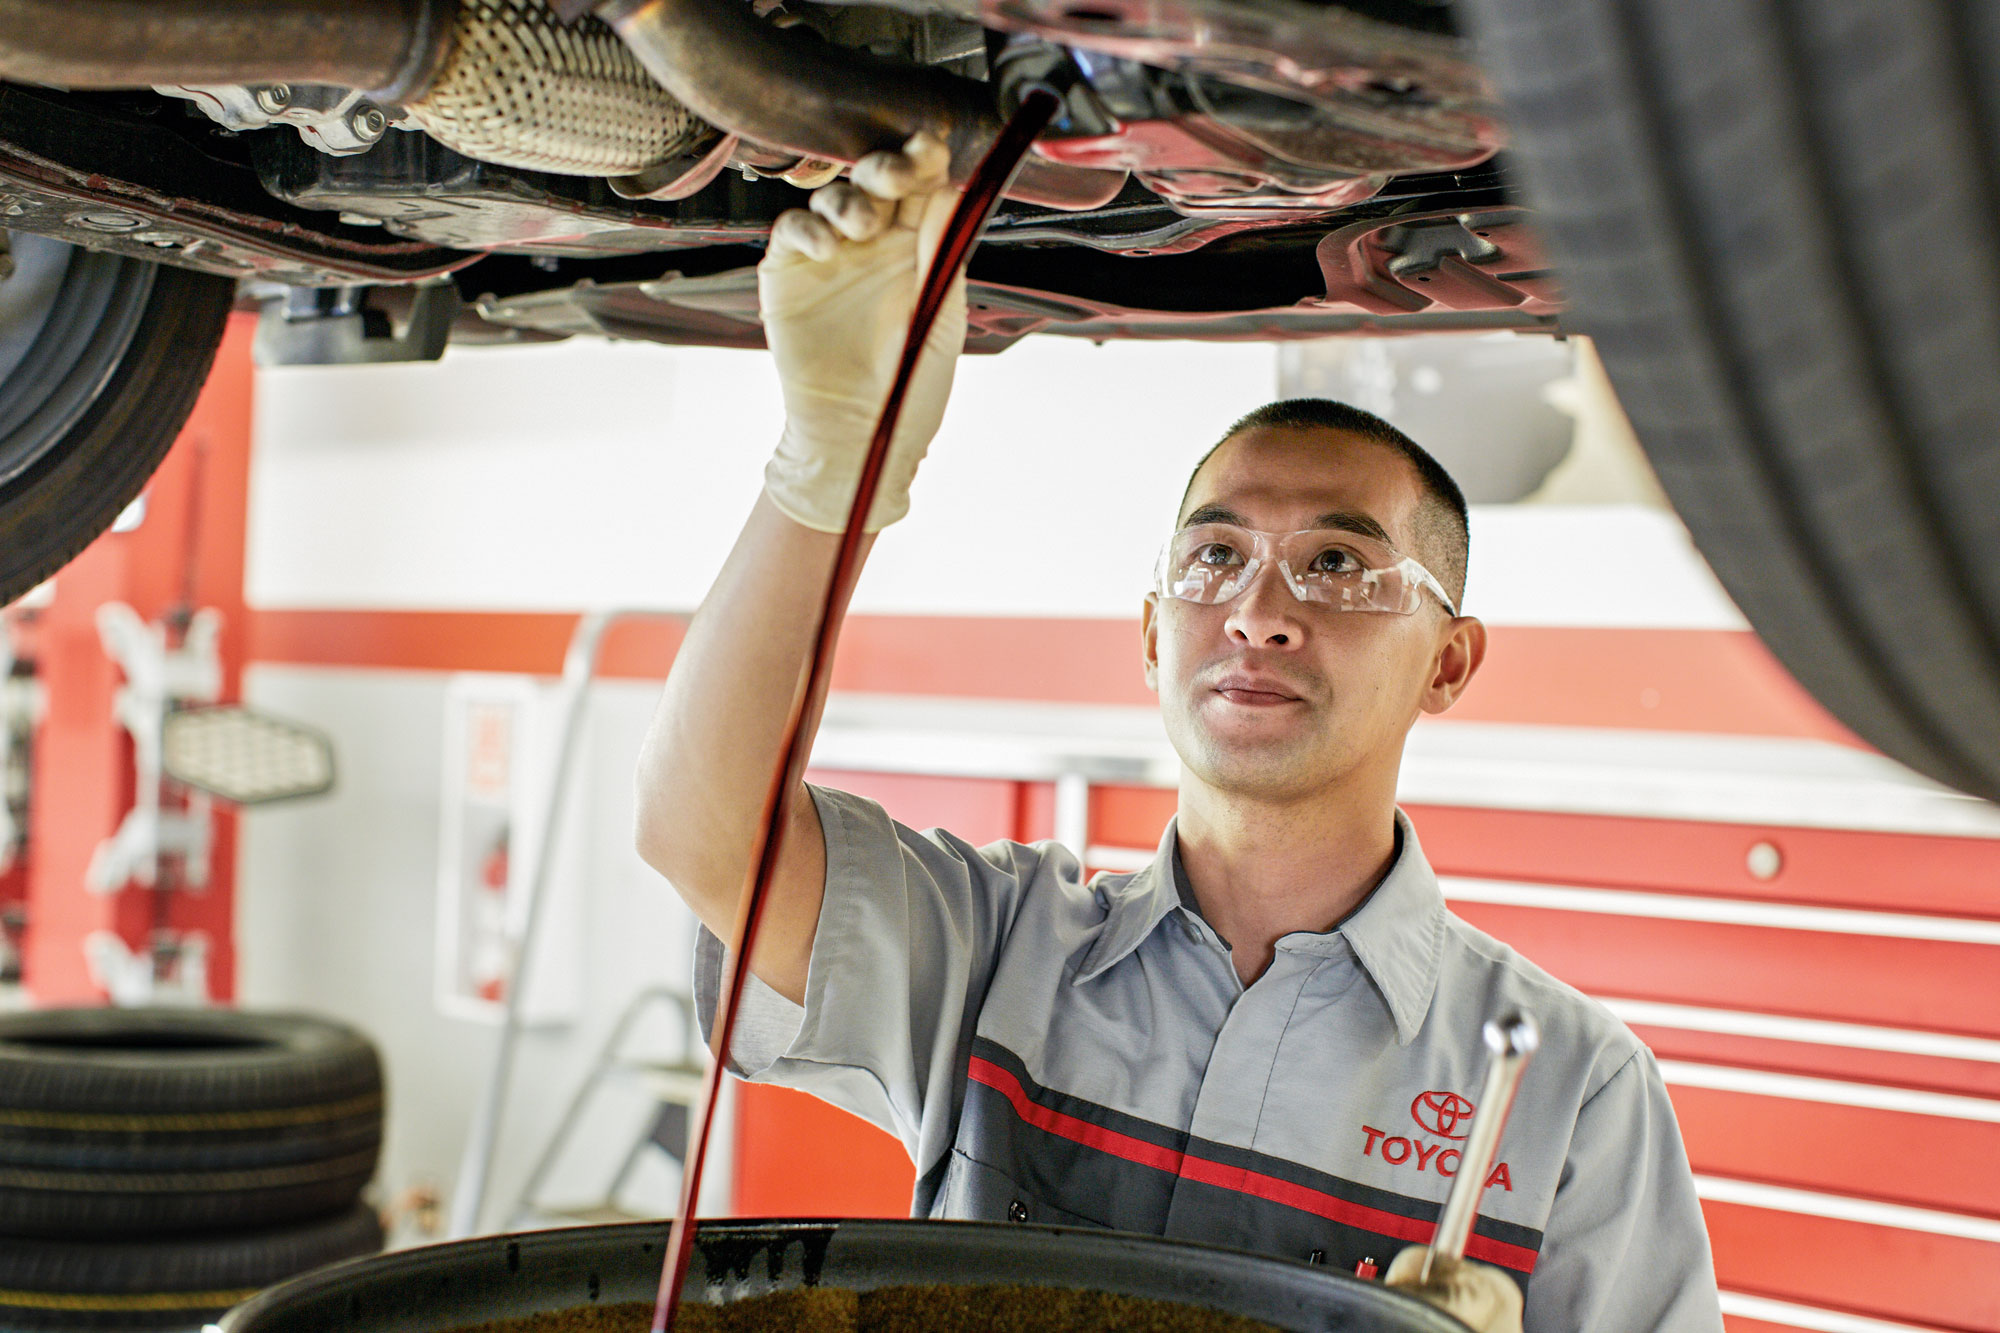 Toyota technician working at Toyota Chula Vista's service center